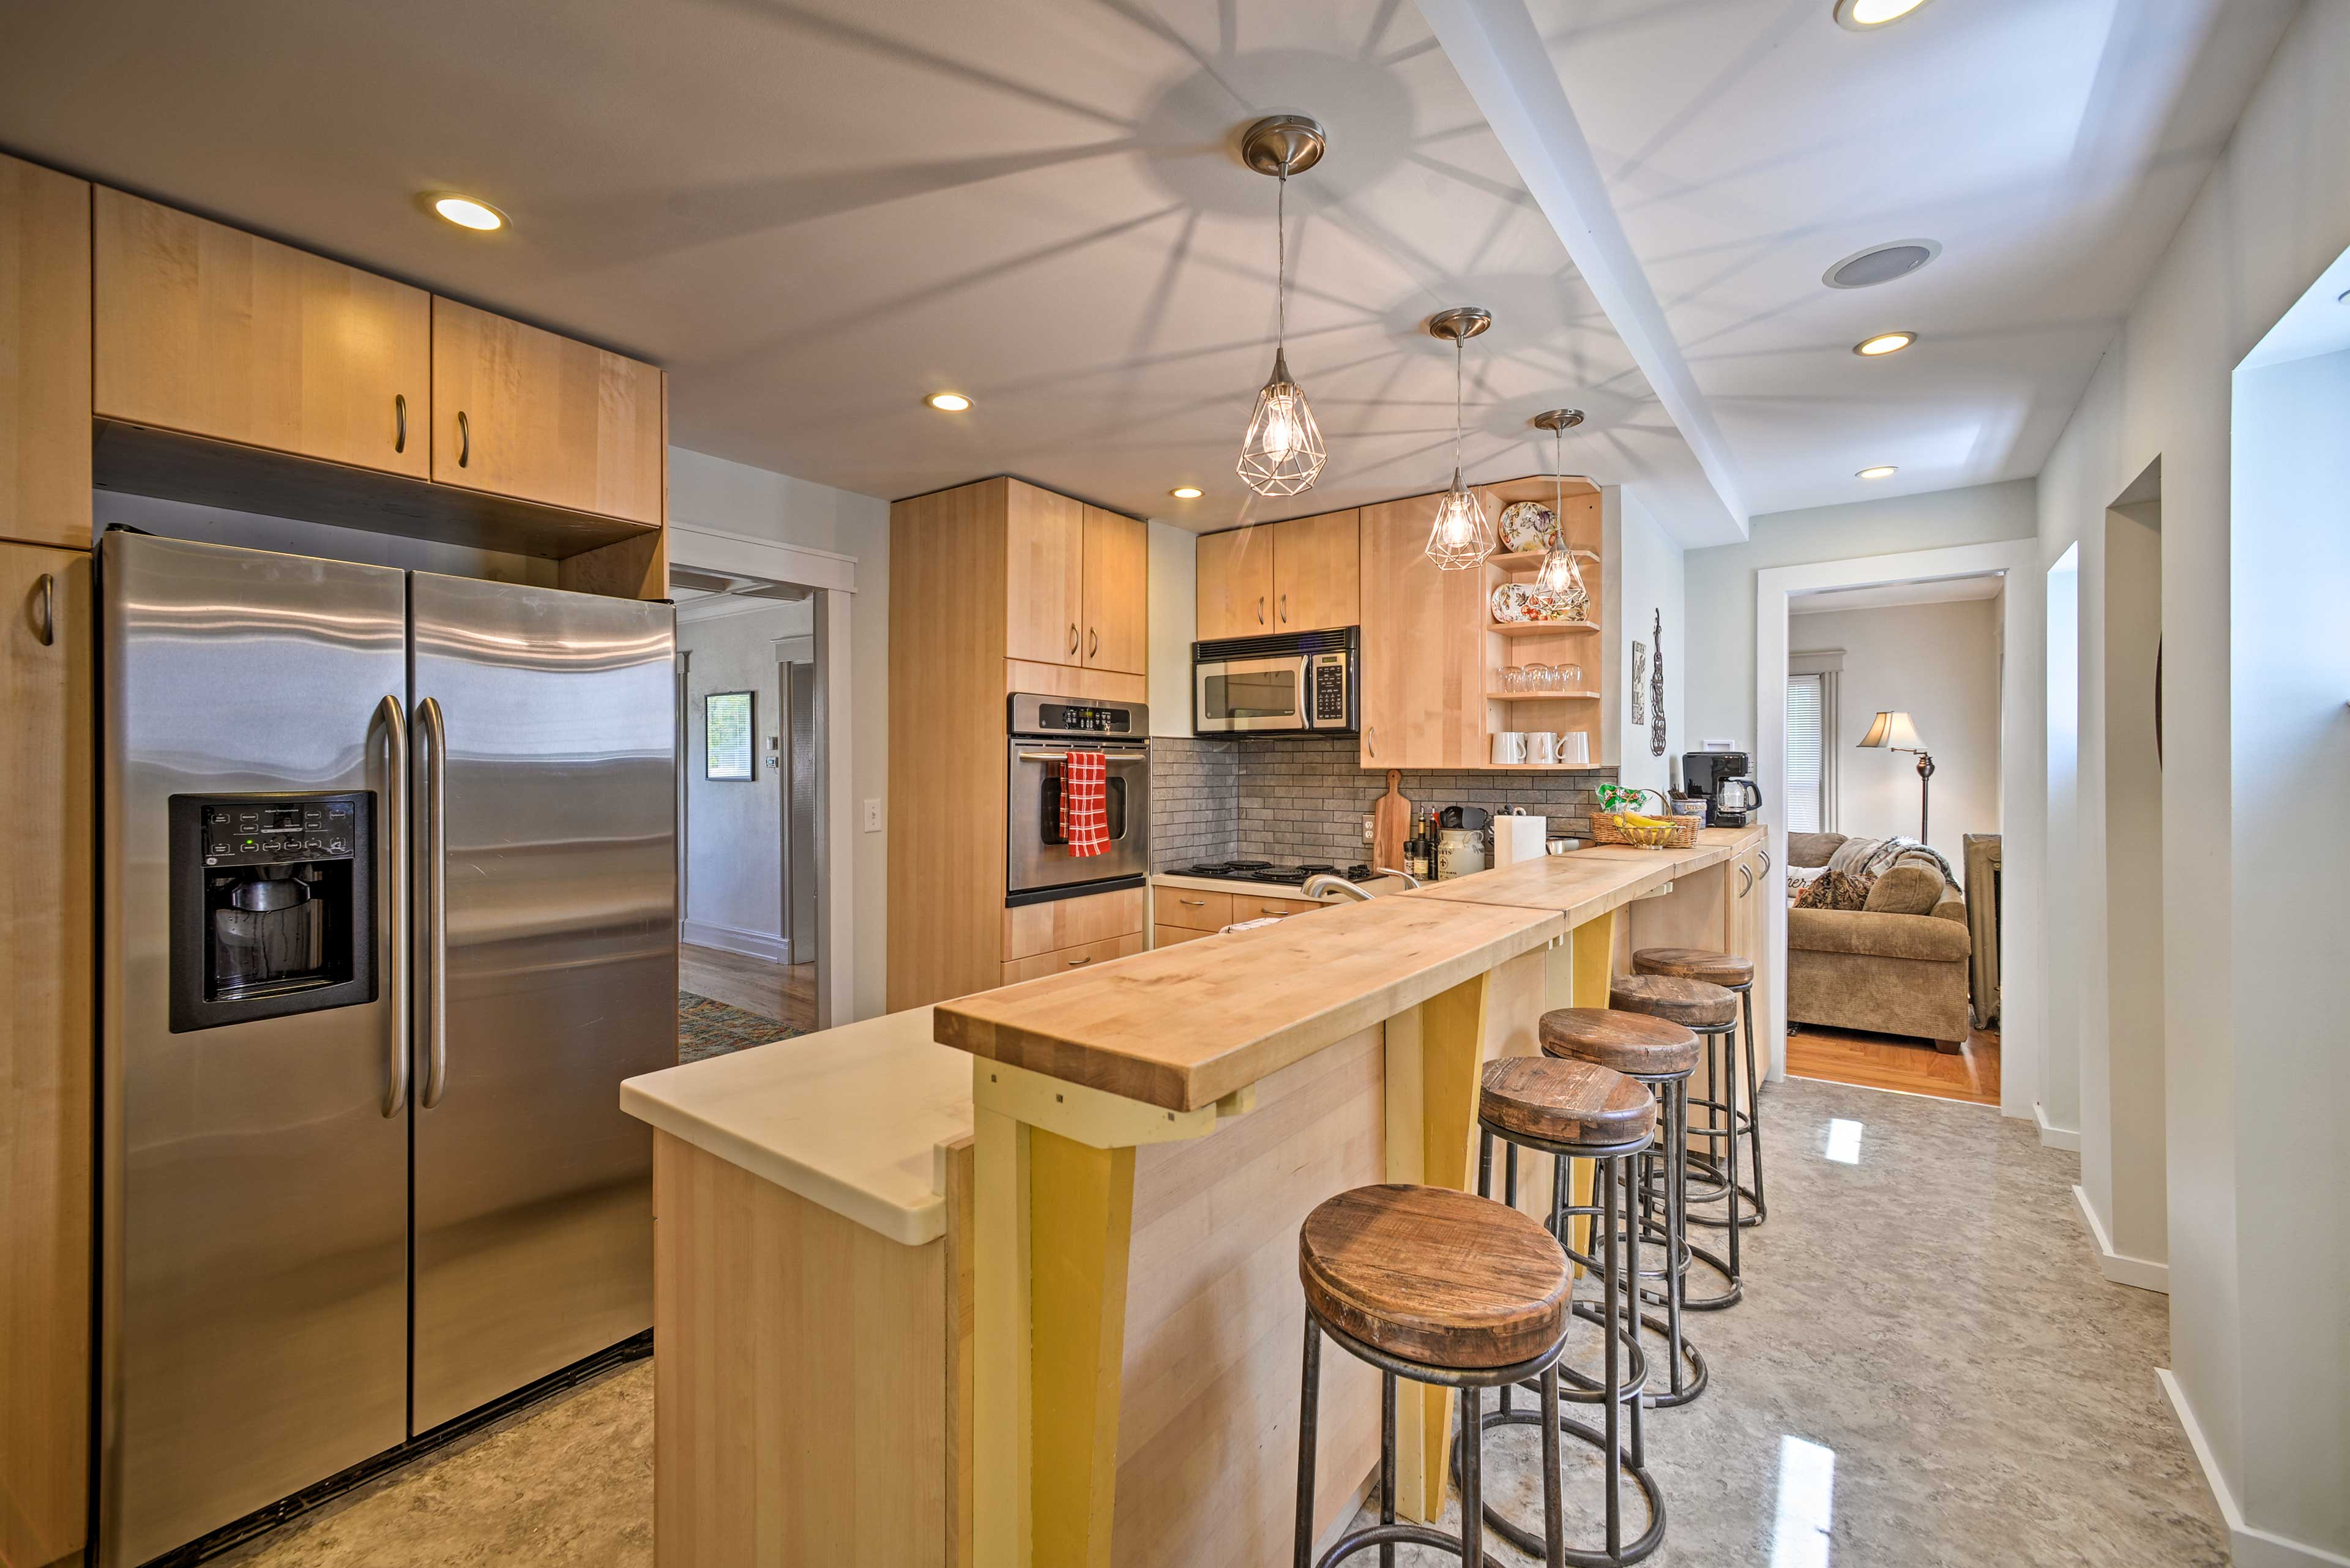 The kitchen is fully equipped with stainless steel appliances & cooking basics!